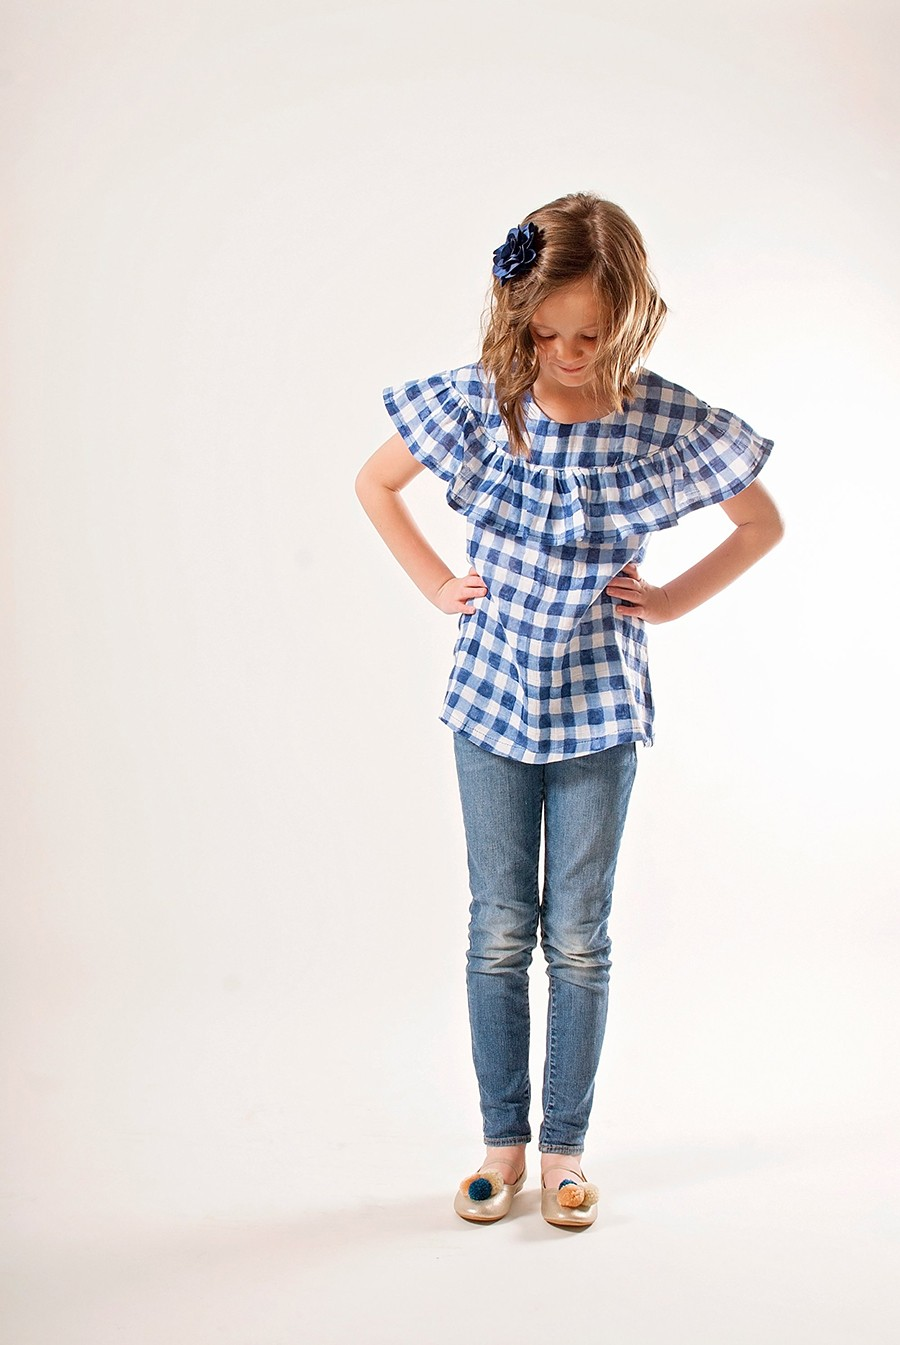 The Oh Darling Top and Dress, Shwin & Shwin Patterns